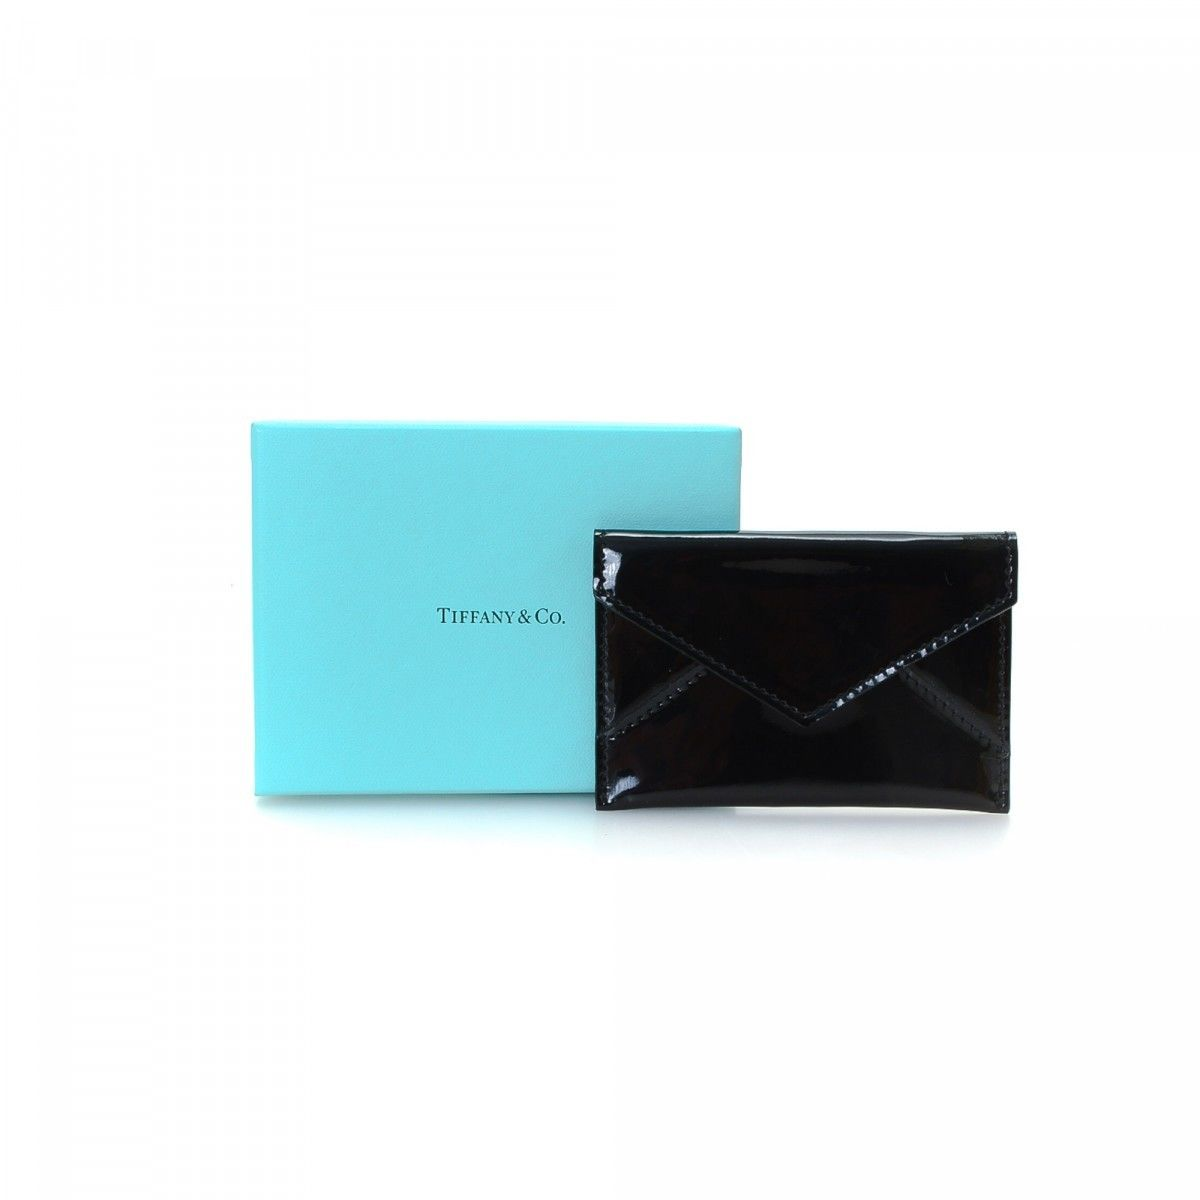 Tiffany Card Holder Patent leather - LXRandCo - Pre-Owned Luxury Vintage